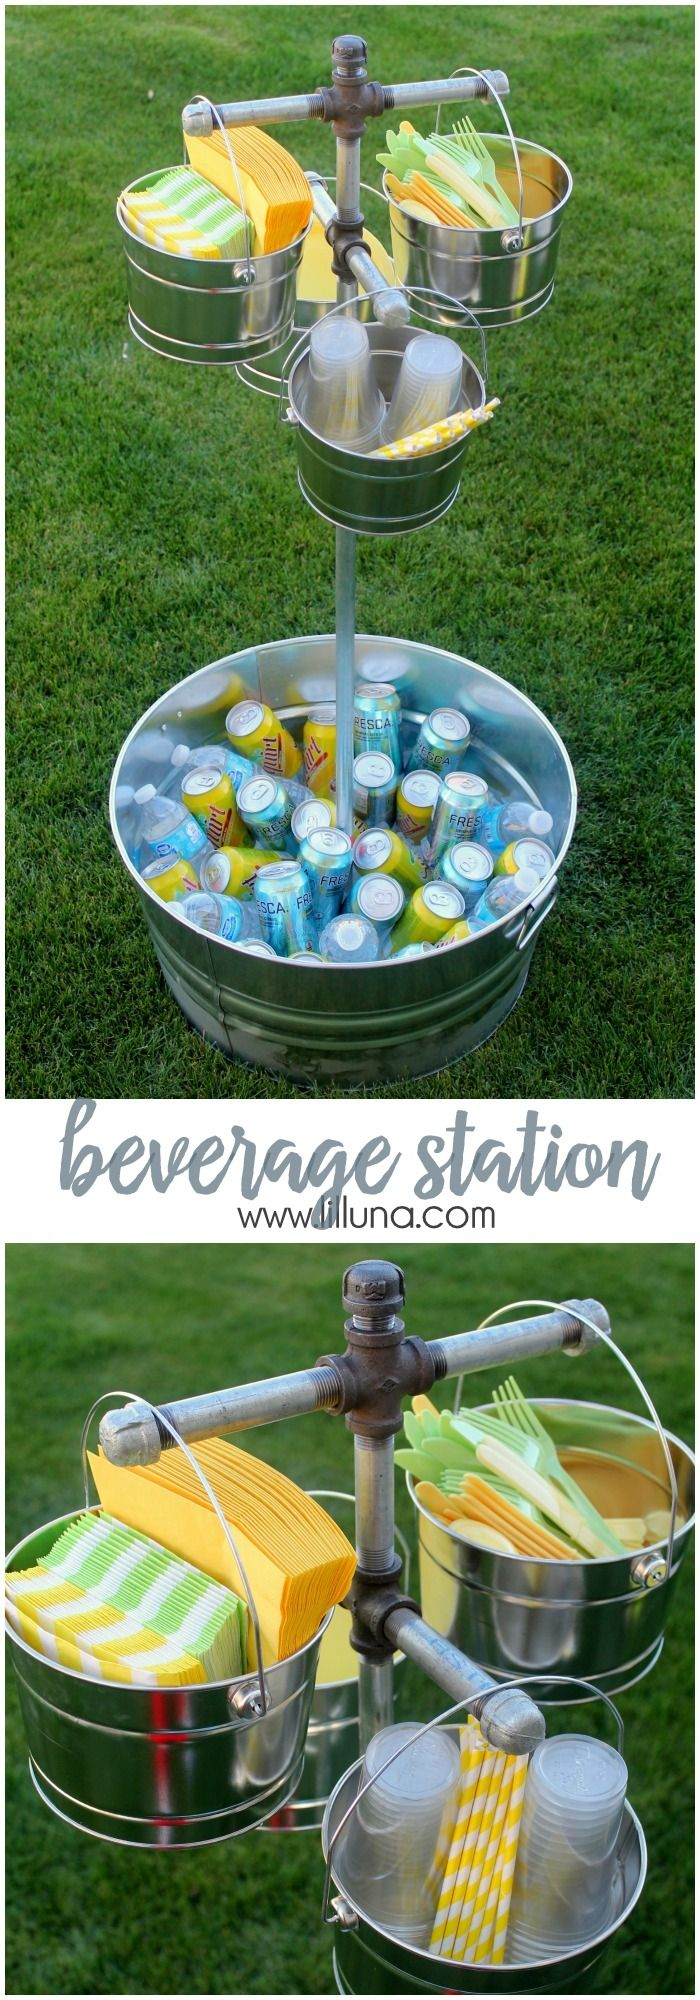 beverage-station-collage